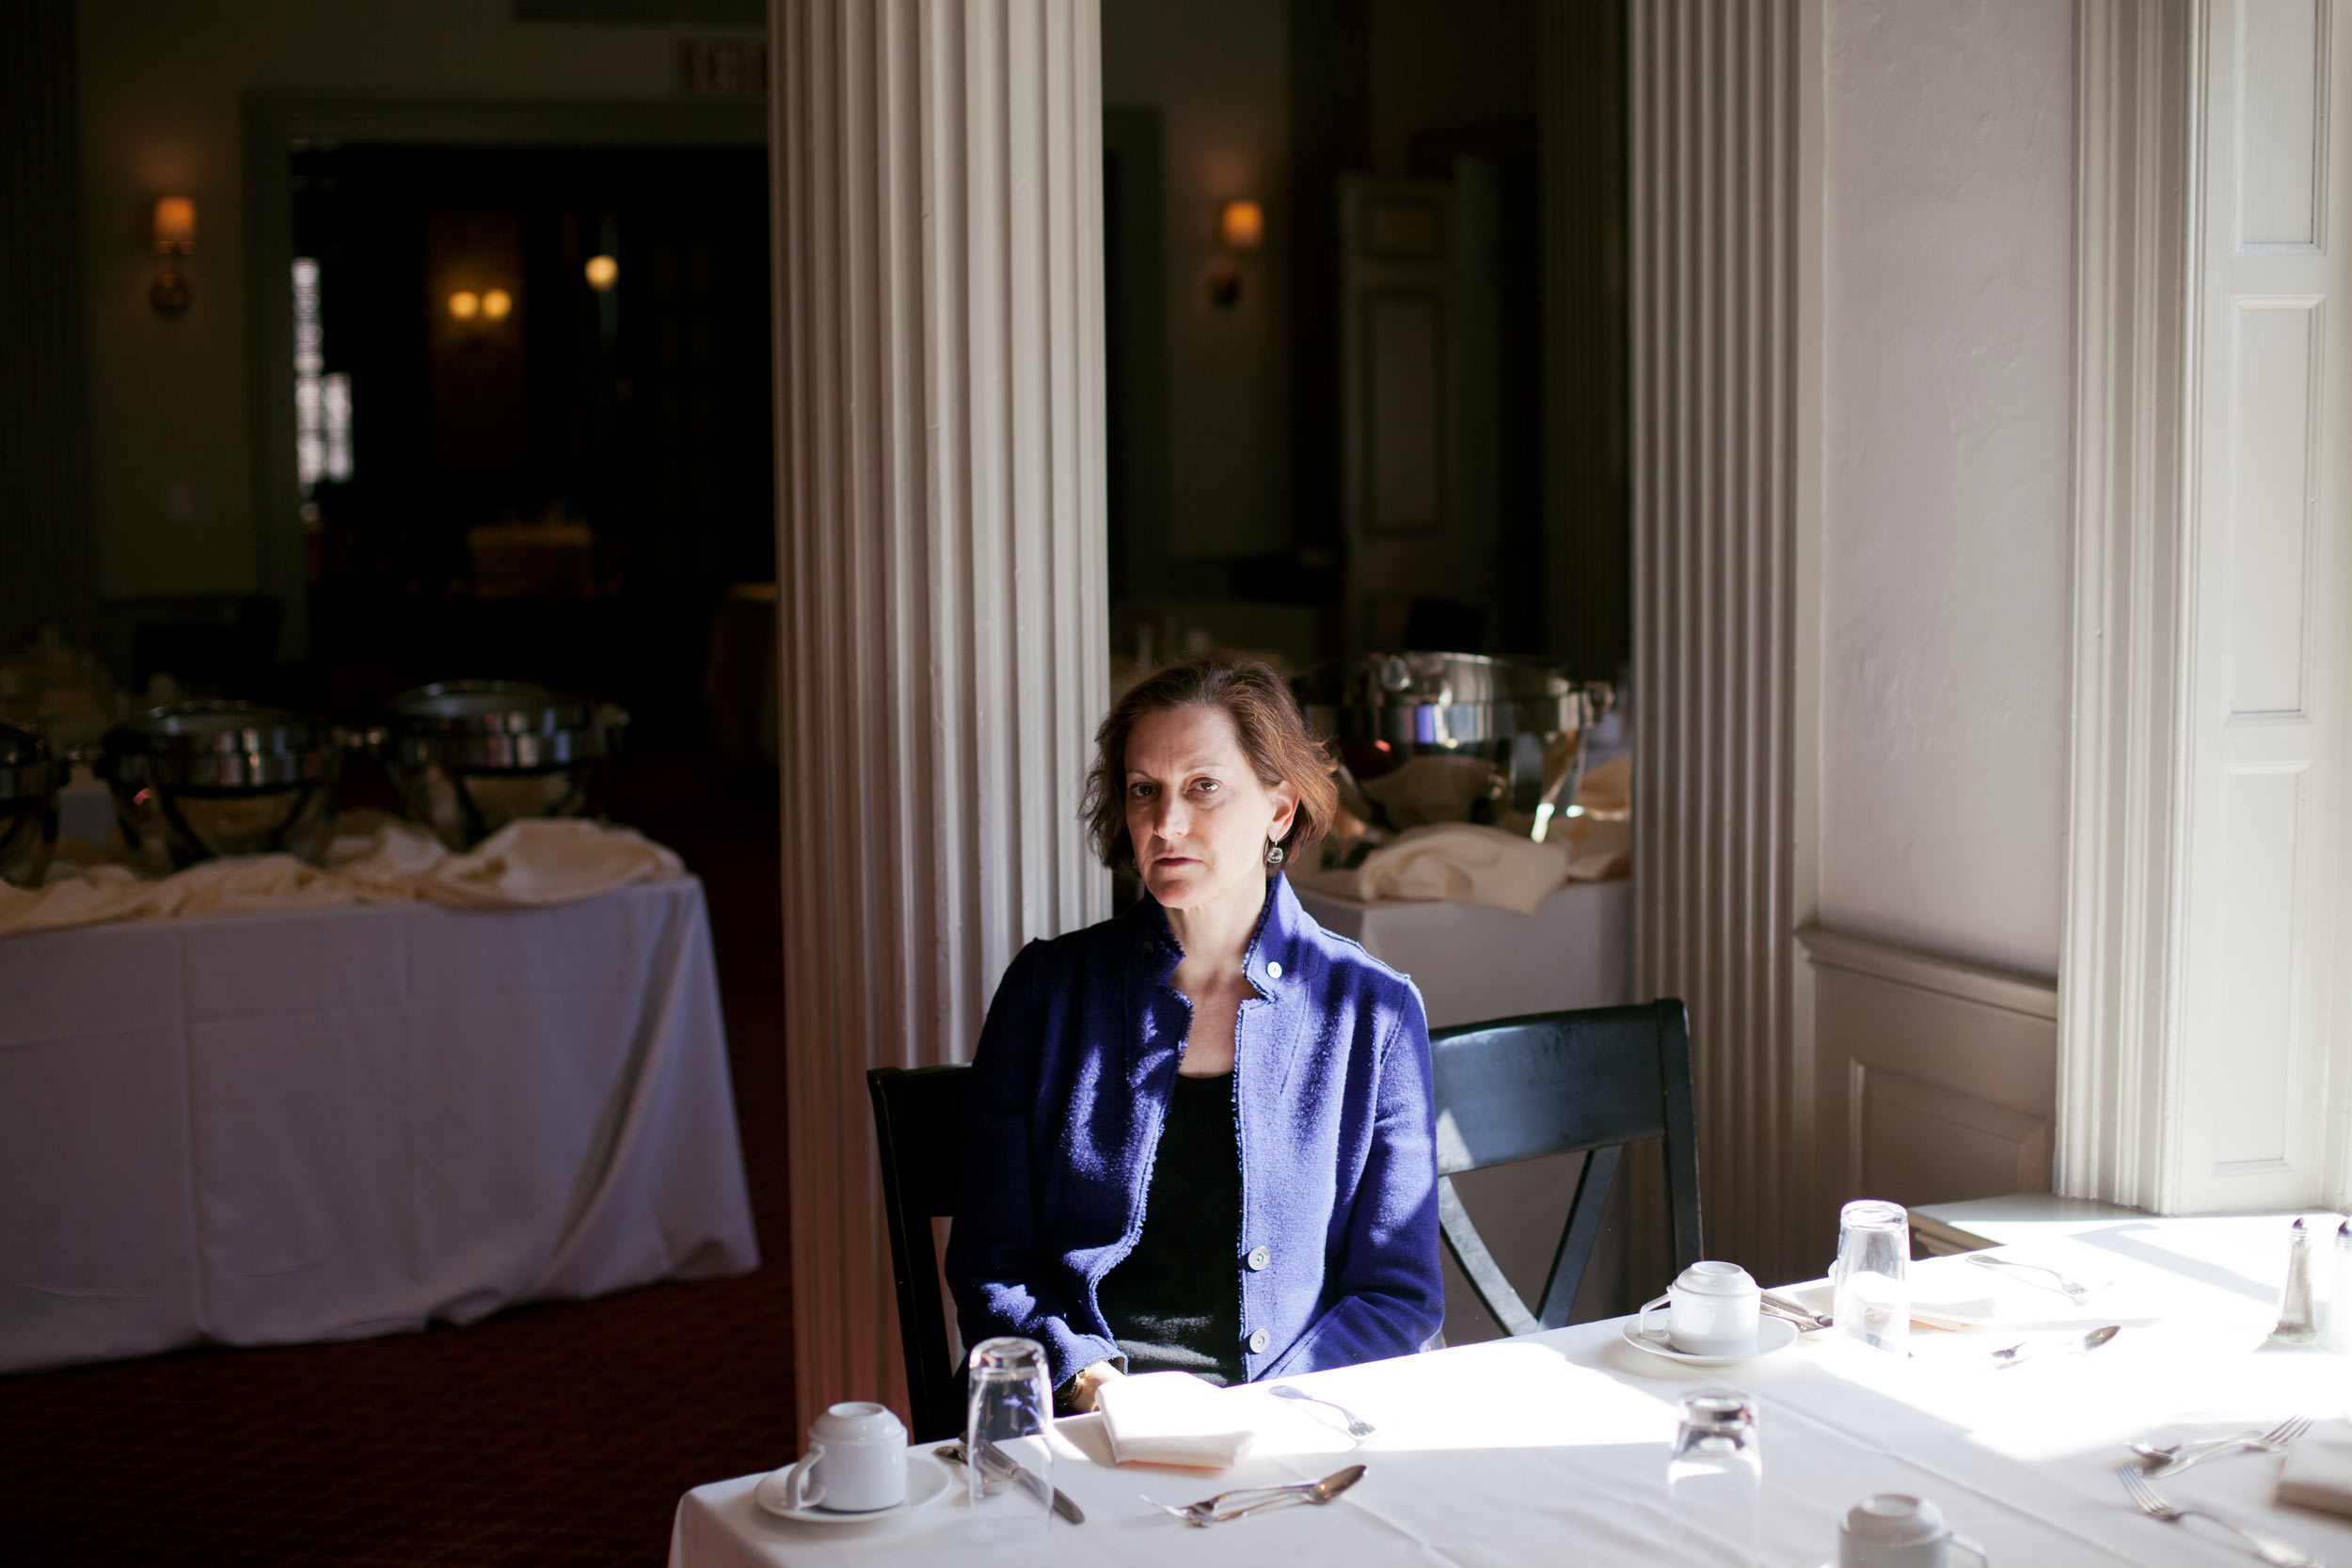 Anne Applebaum for Das Magazin, photographed by Katharina Poblotzki